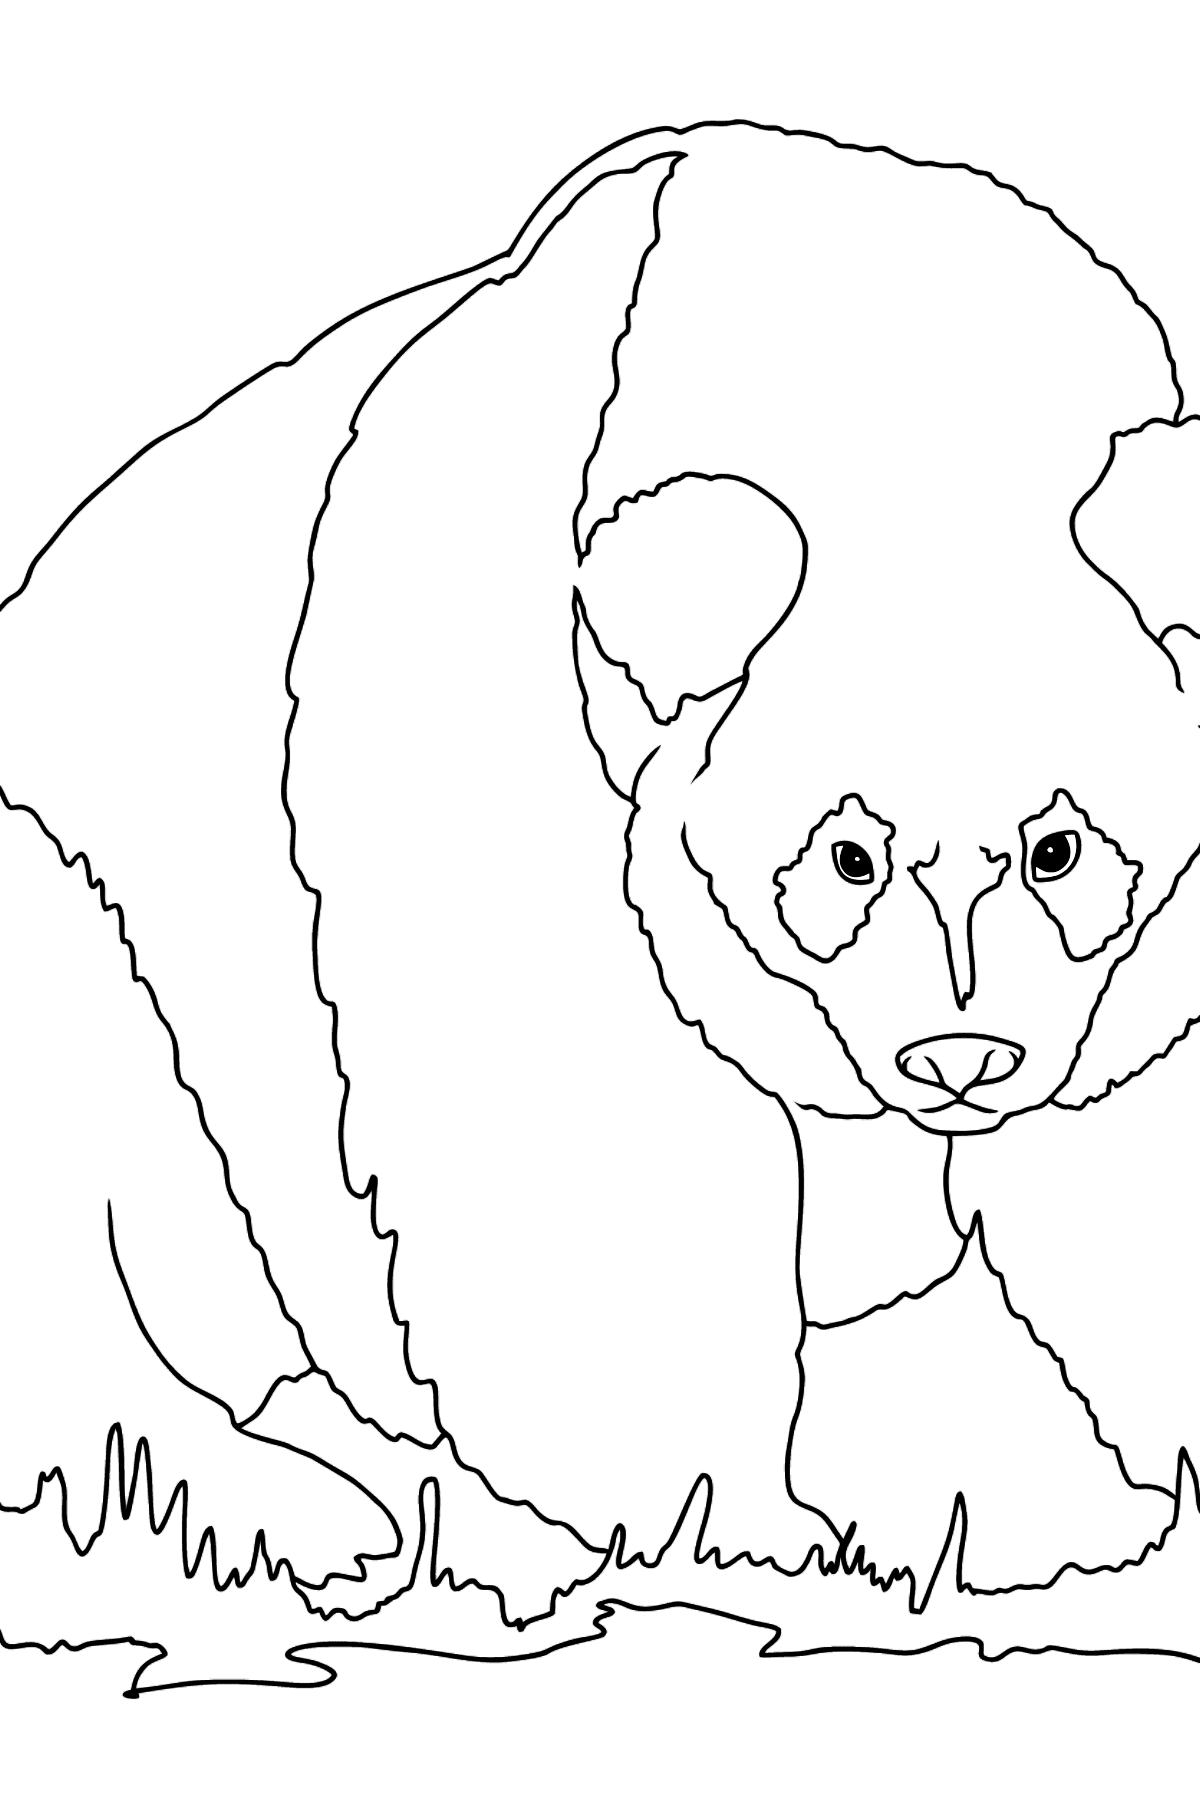 Coloring Page - A Panda is Standing - Coloring Pages for Kids